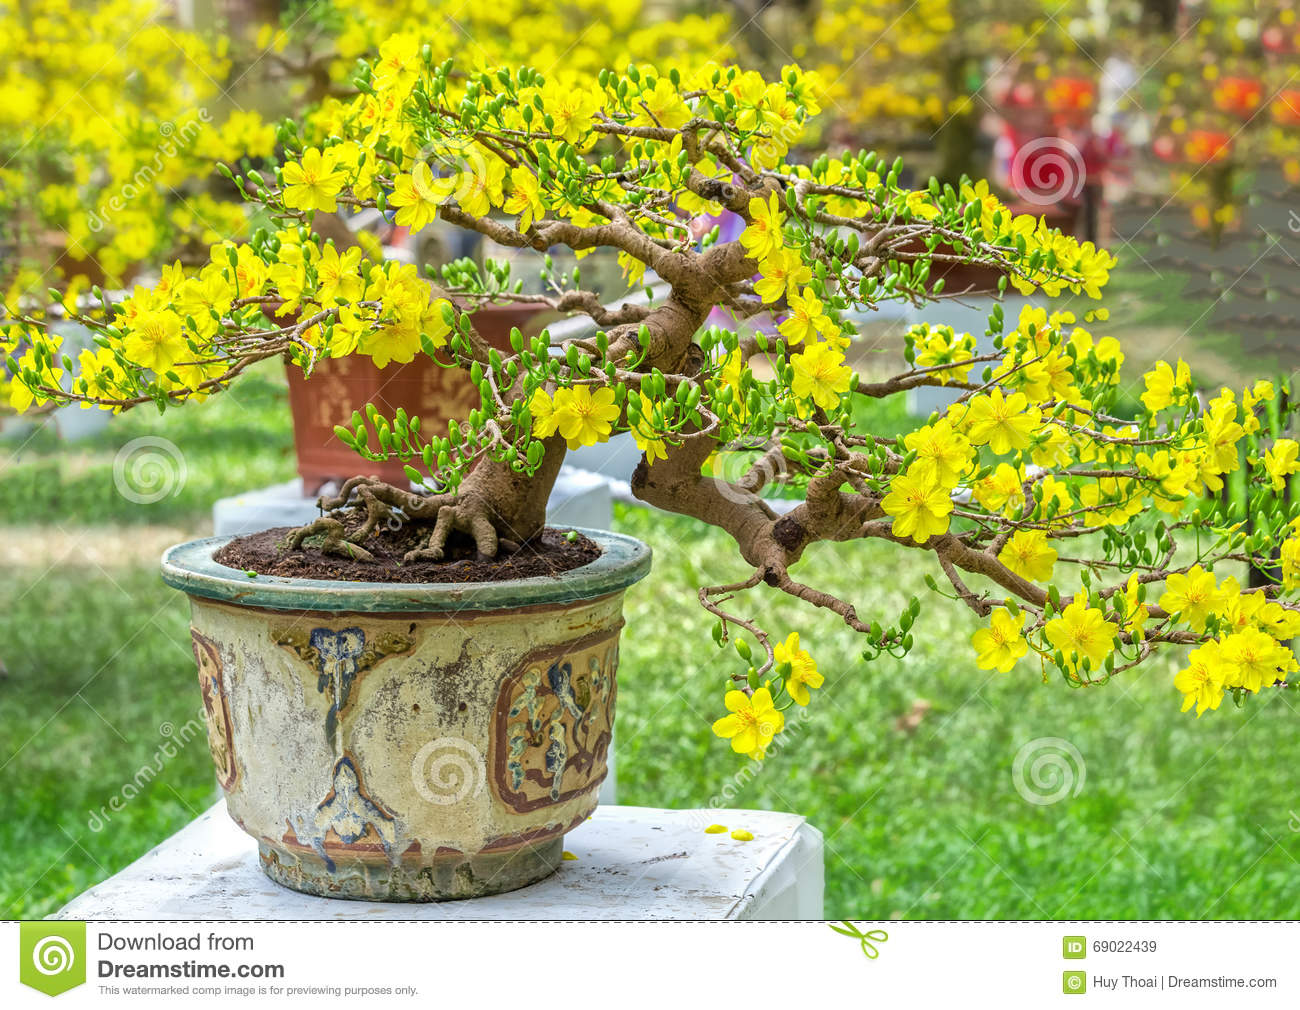 Apricot Bonsai Potted Trees Are Blooming Stock Photo ...